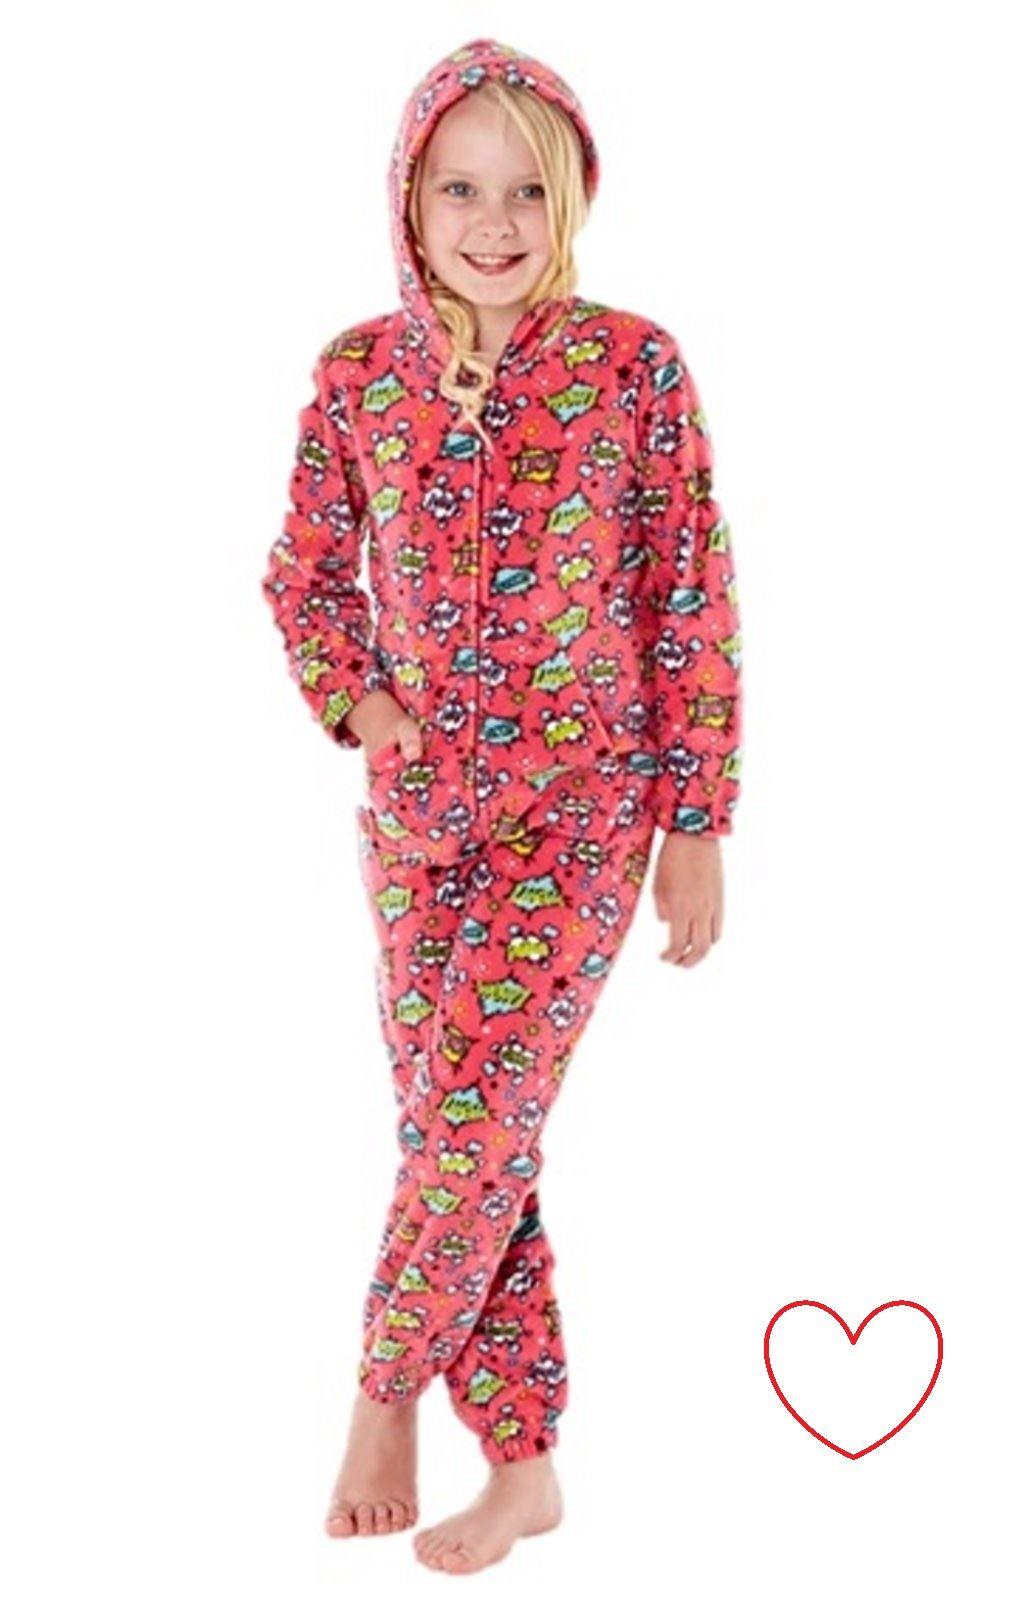 boys girls onesie fleece all in one pyjamas one piece pajama 7 8 9 10 11 12 13. Black Bedroom Furniture Sets. Home Design Ideas